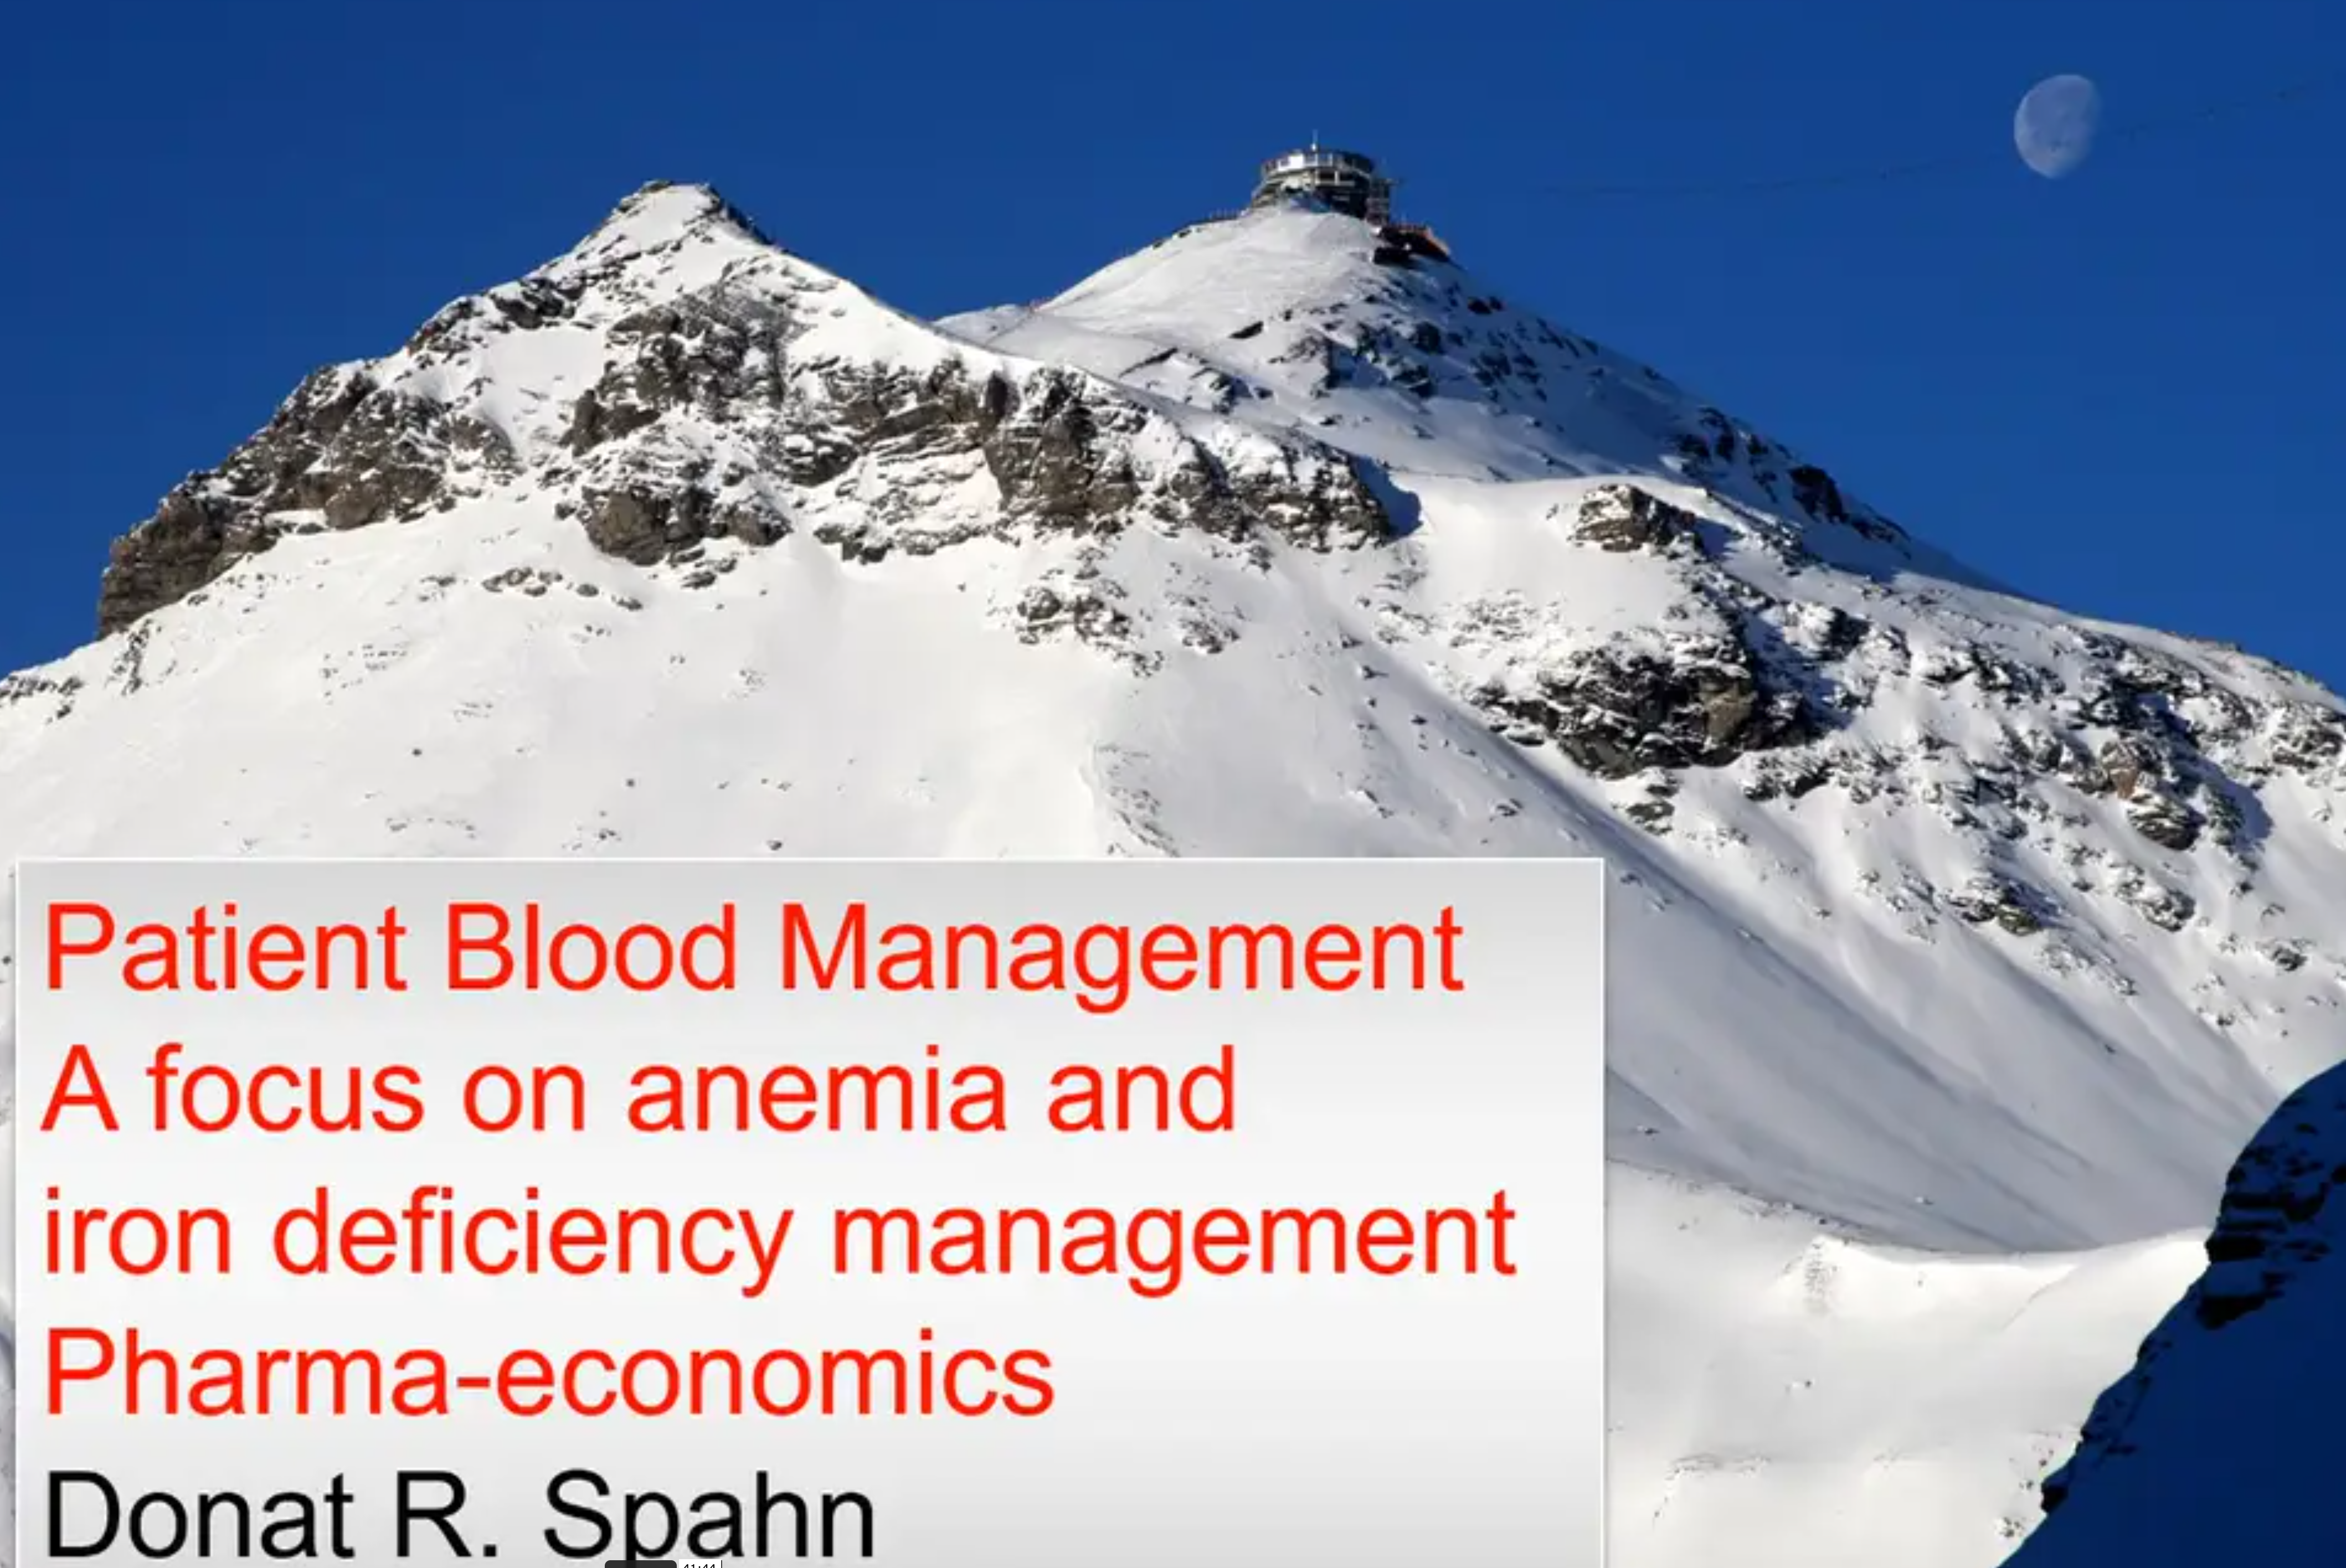 Spahn_PBM_A focus on anemia and iron deficiency management_Pharameconomics